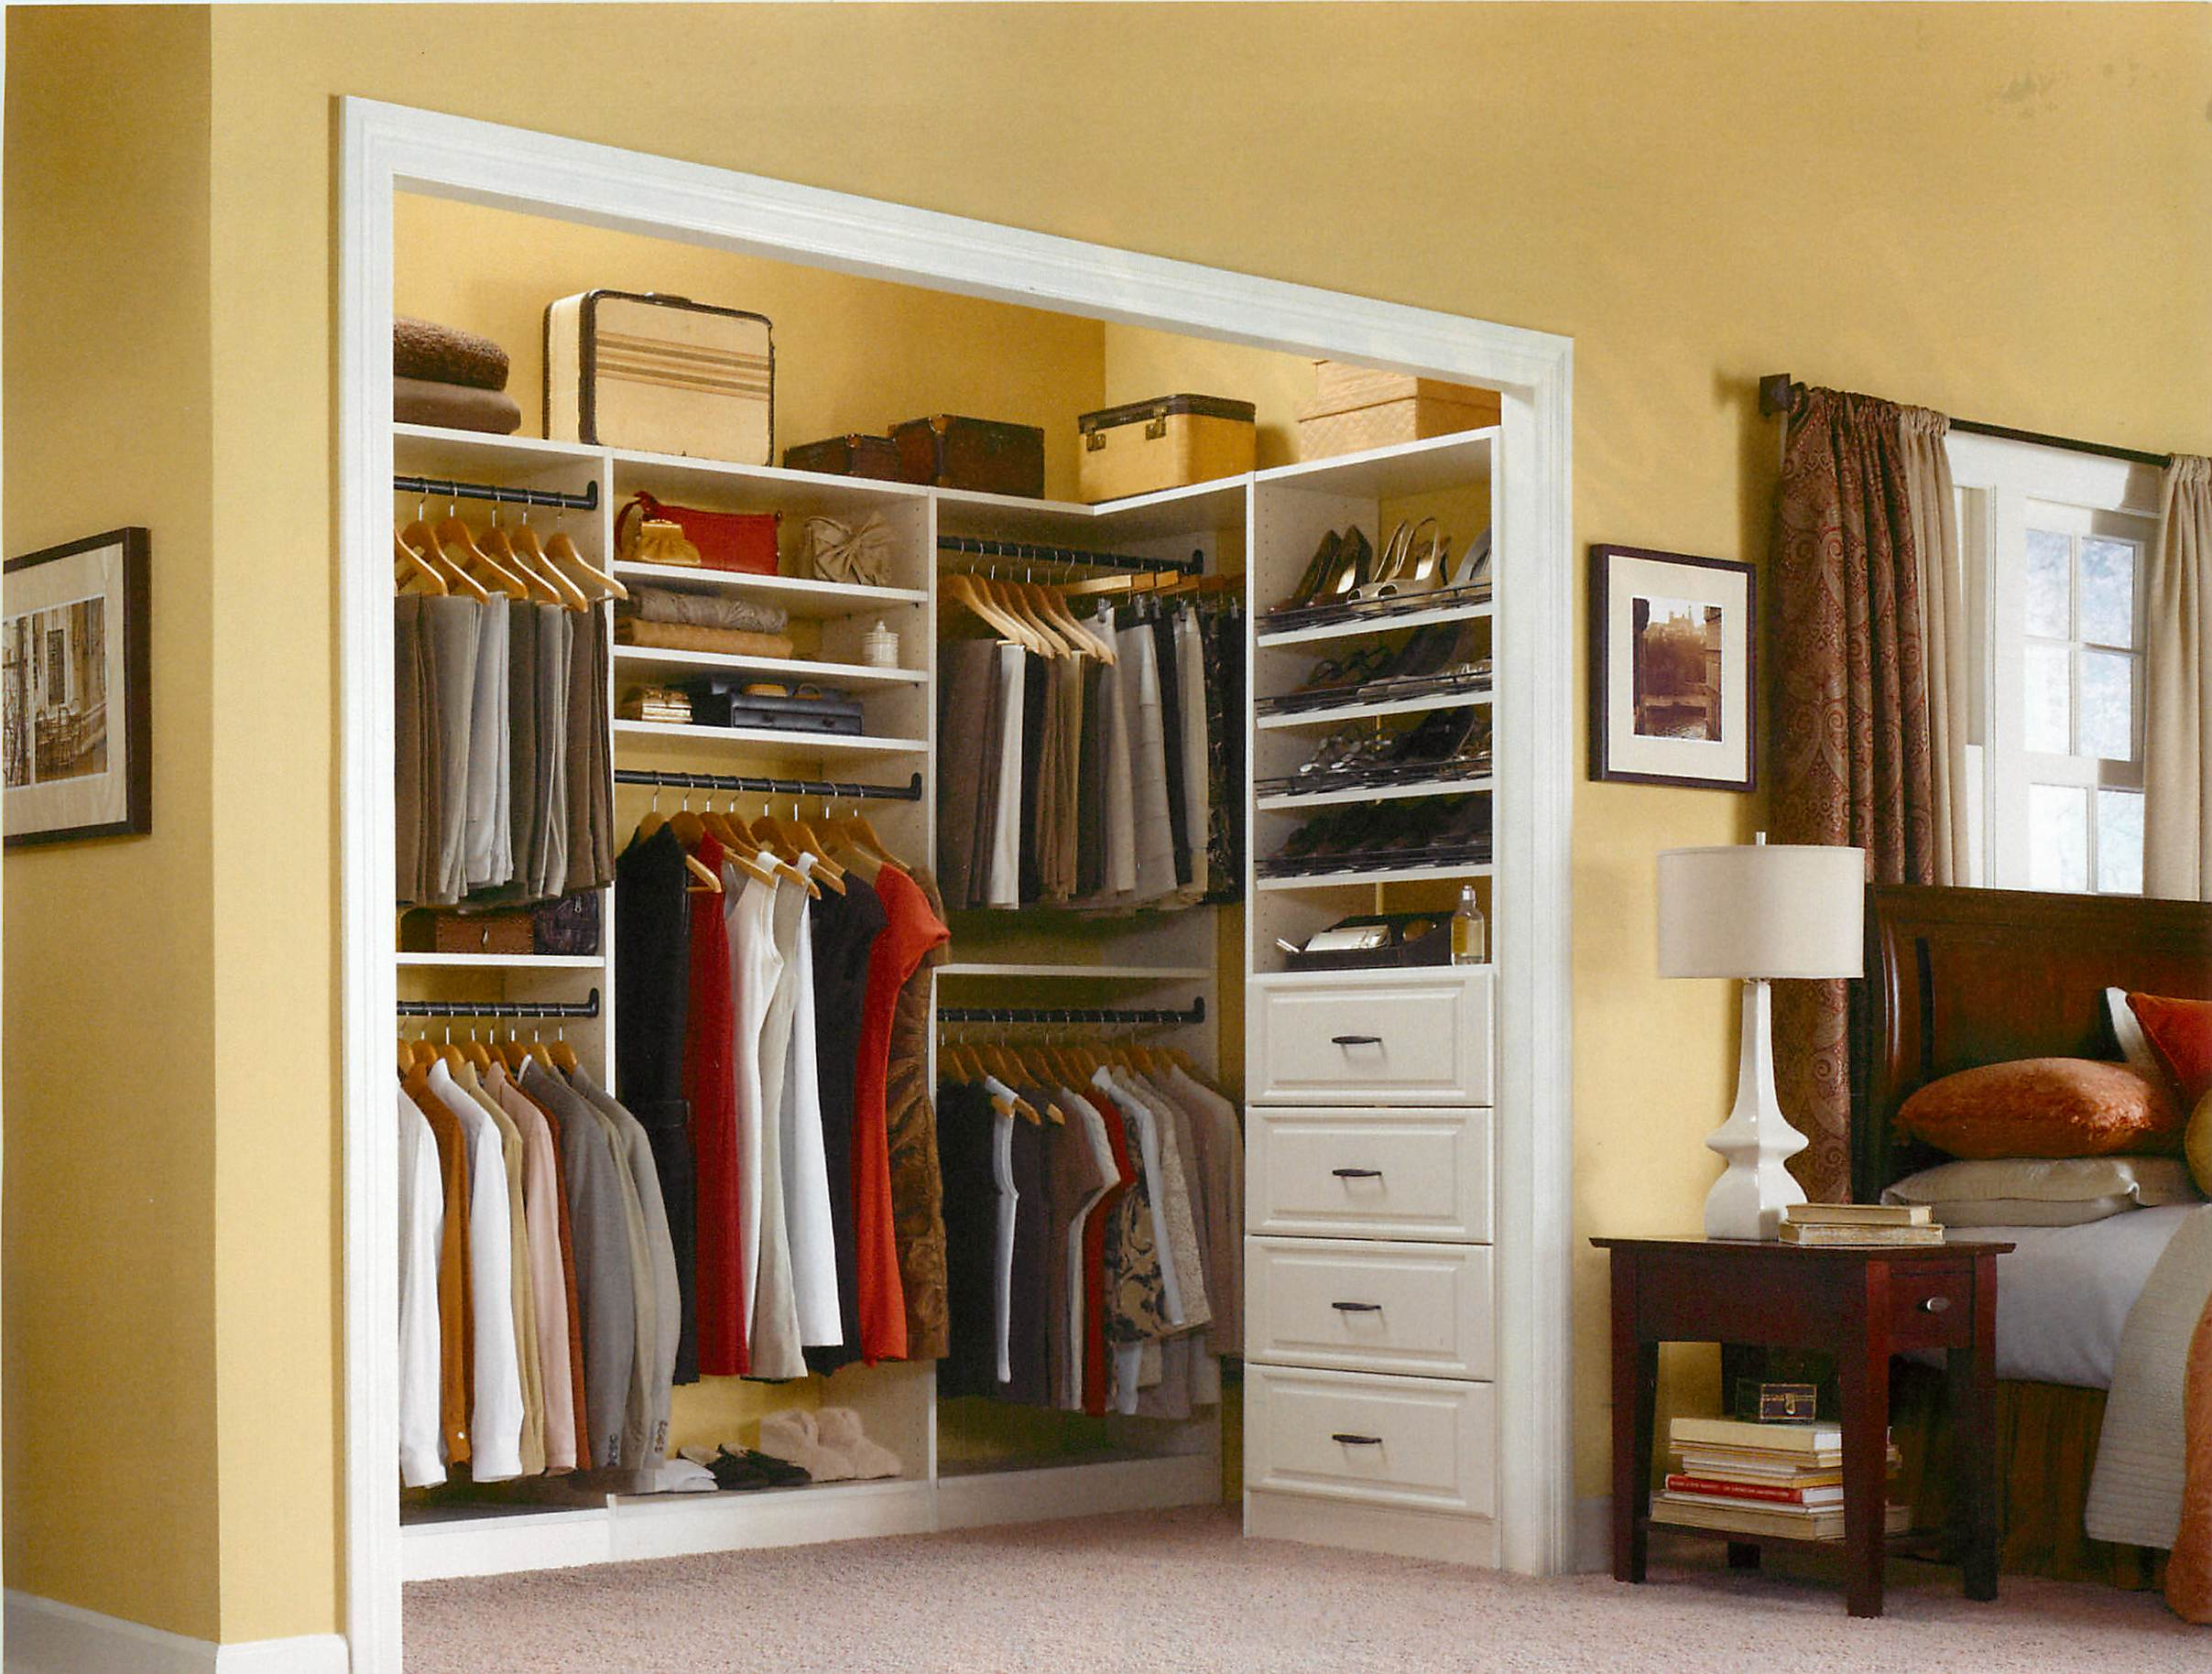 Rubbermaid Custom Closets. Rubbermaid Custom Closets are the answer to your organizing